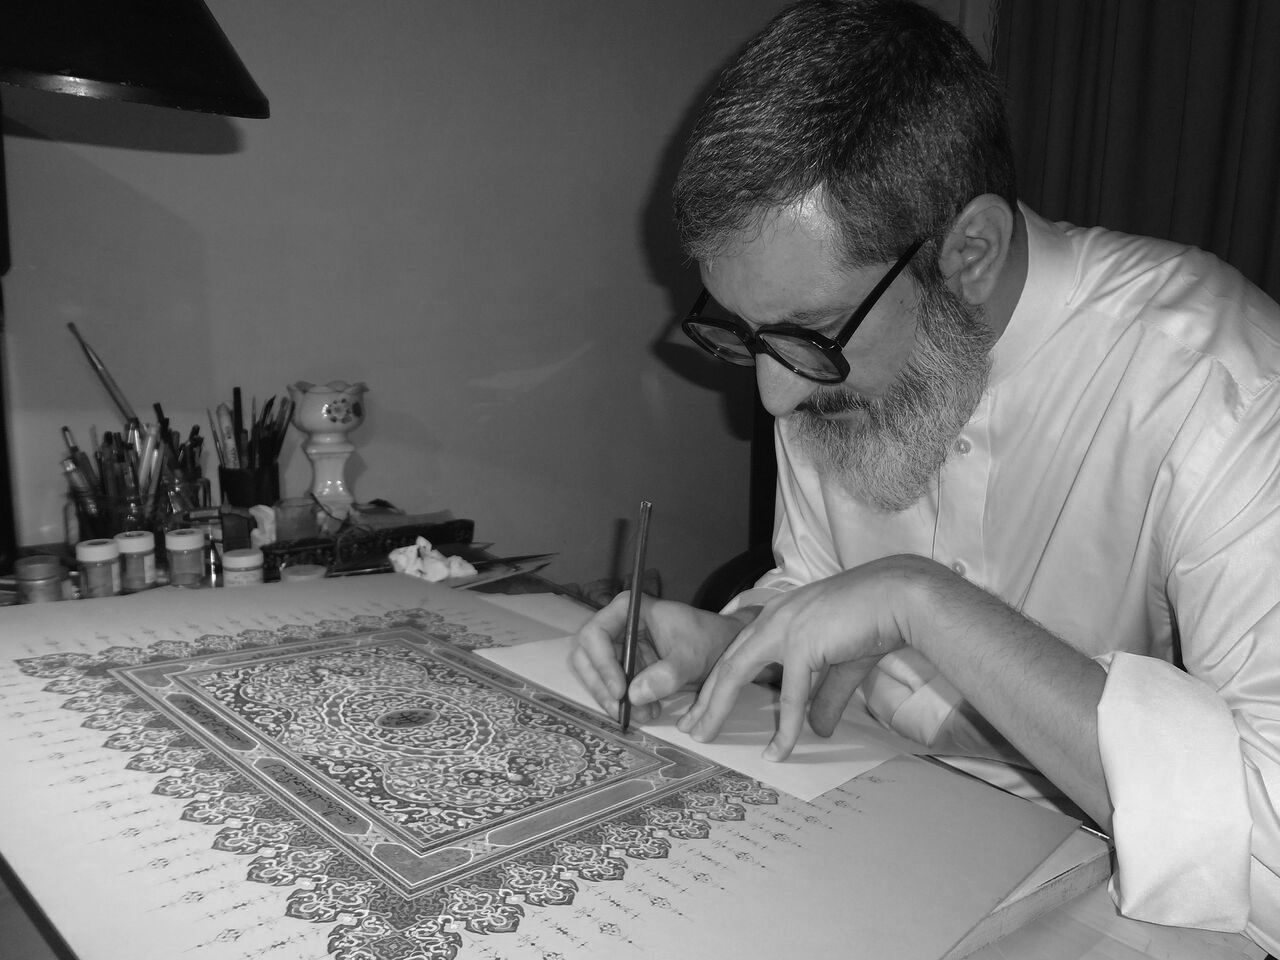 Ayatollah Masoumi Tehrani completing a work of calligraphy of text from the writings of Baha'u'llah, founder of the Baha'i faith